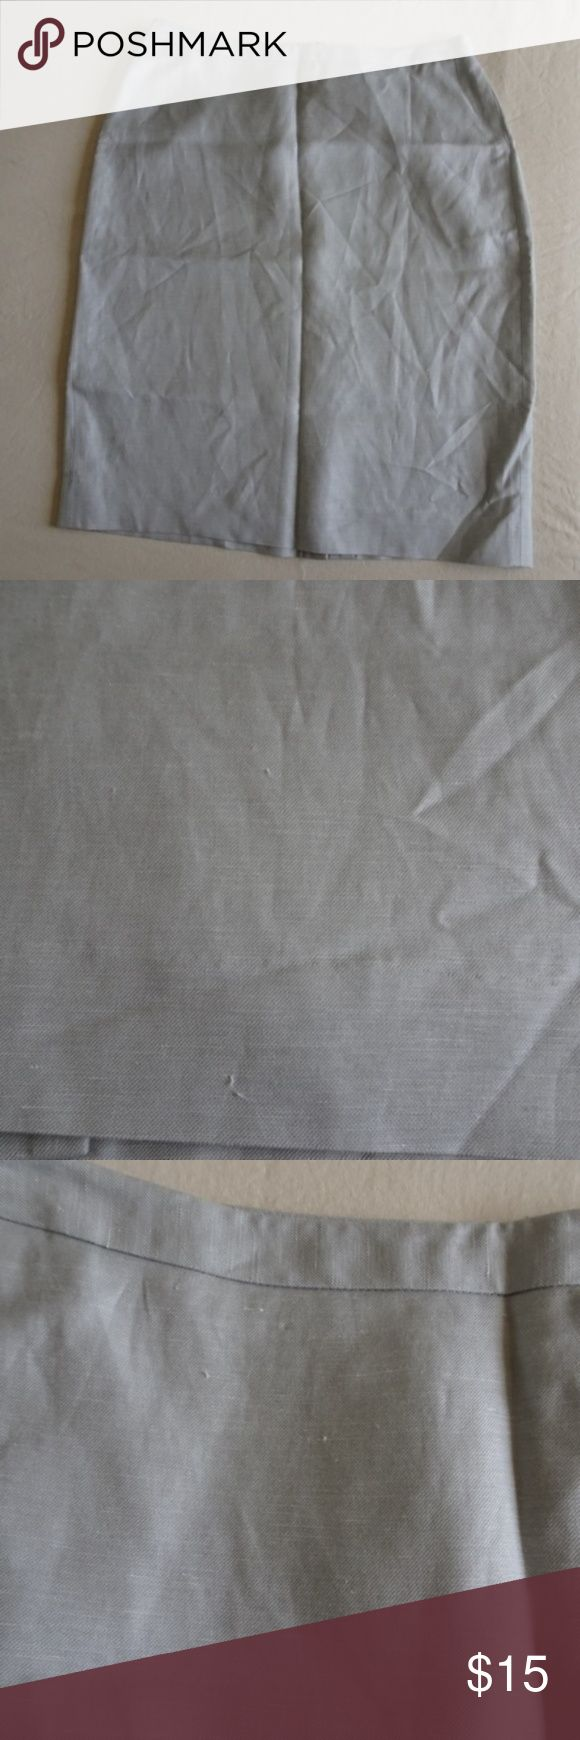 """LOFT silk linen blend pencil skirt Great condition, some minor snags on the front, almost could pass for fabric knots. silvery gray color zipper in back  slit in back length 7""""  length 22.5""""  silk linen blend dry clean only. Lined.  All items come from a non-smoking home! LOFT Skirts Pencil"""